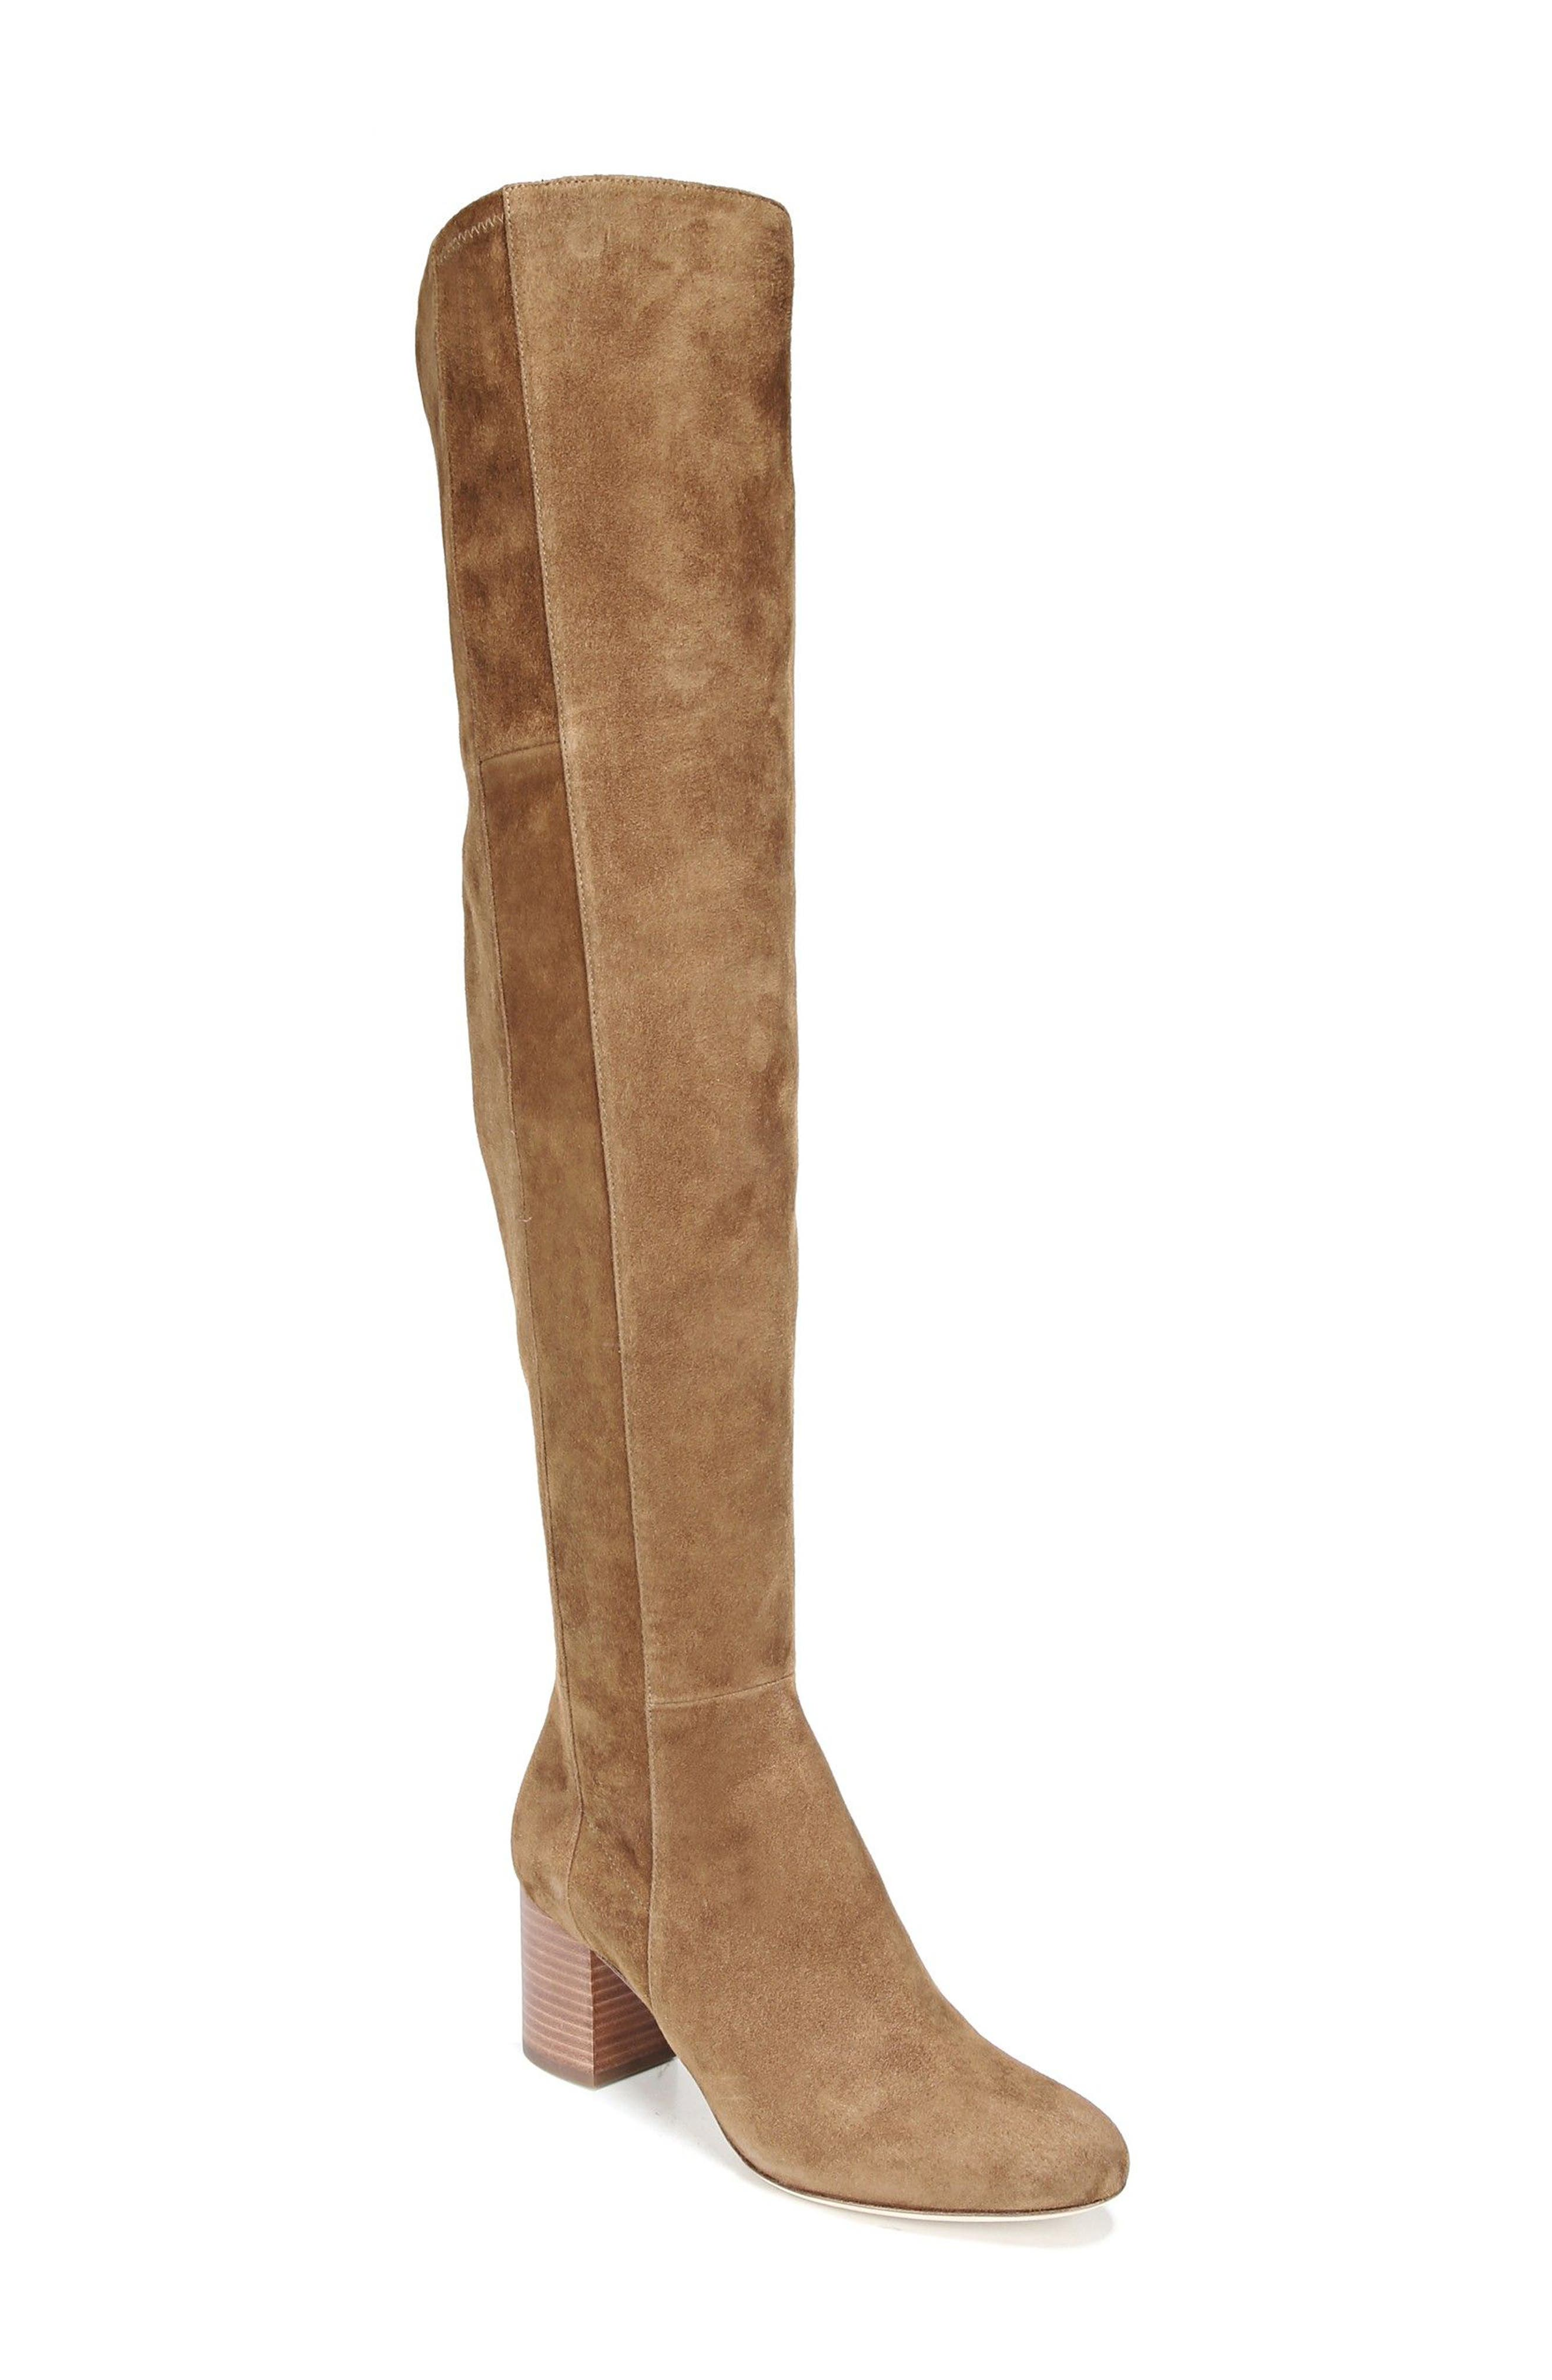 Luzzi Over the Knee Boot,                         Main,                         color, Clove